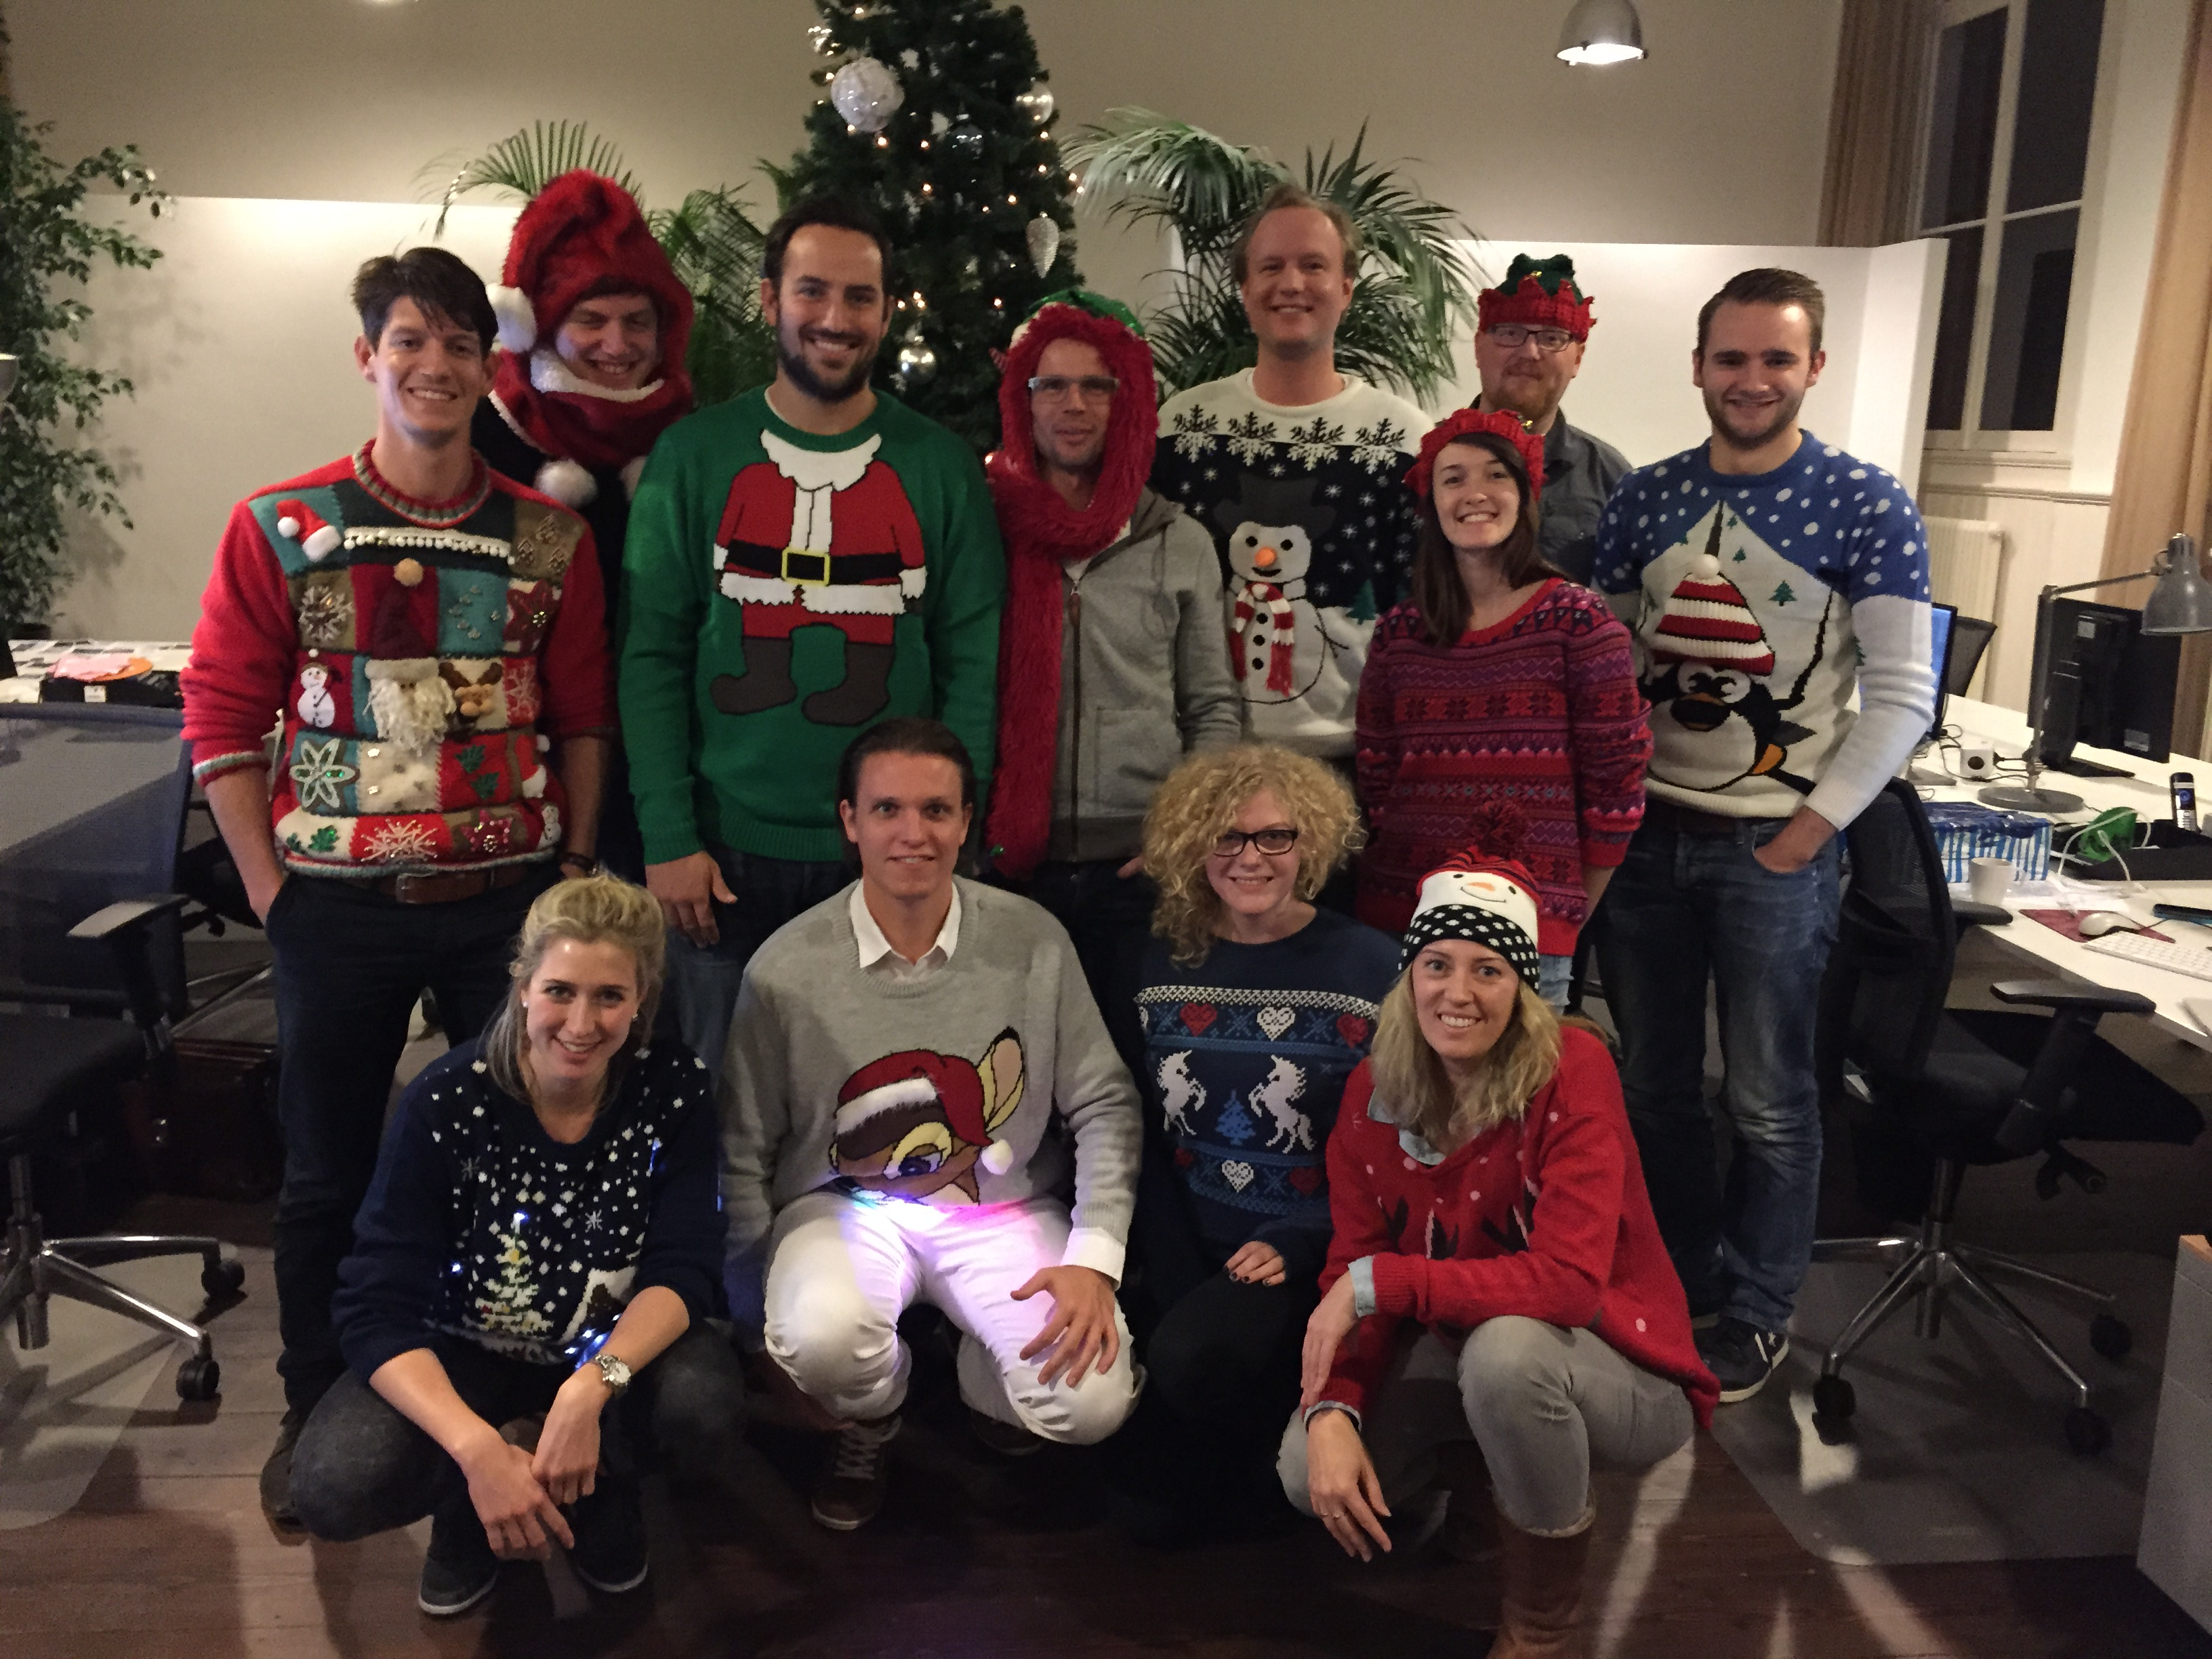 The Ugly Christmas Sweater Contest in 2014.